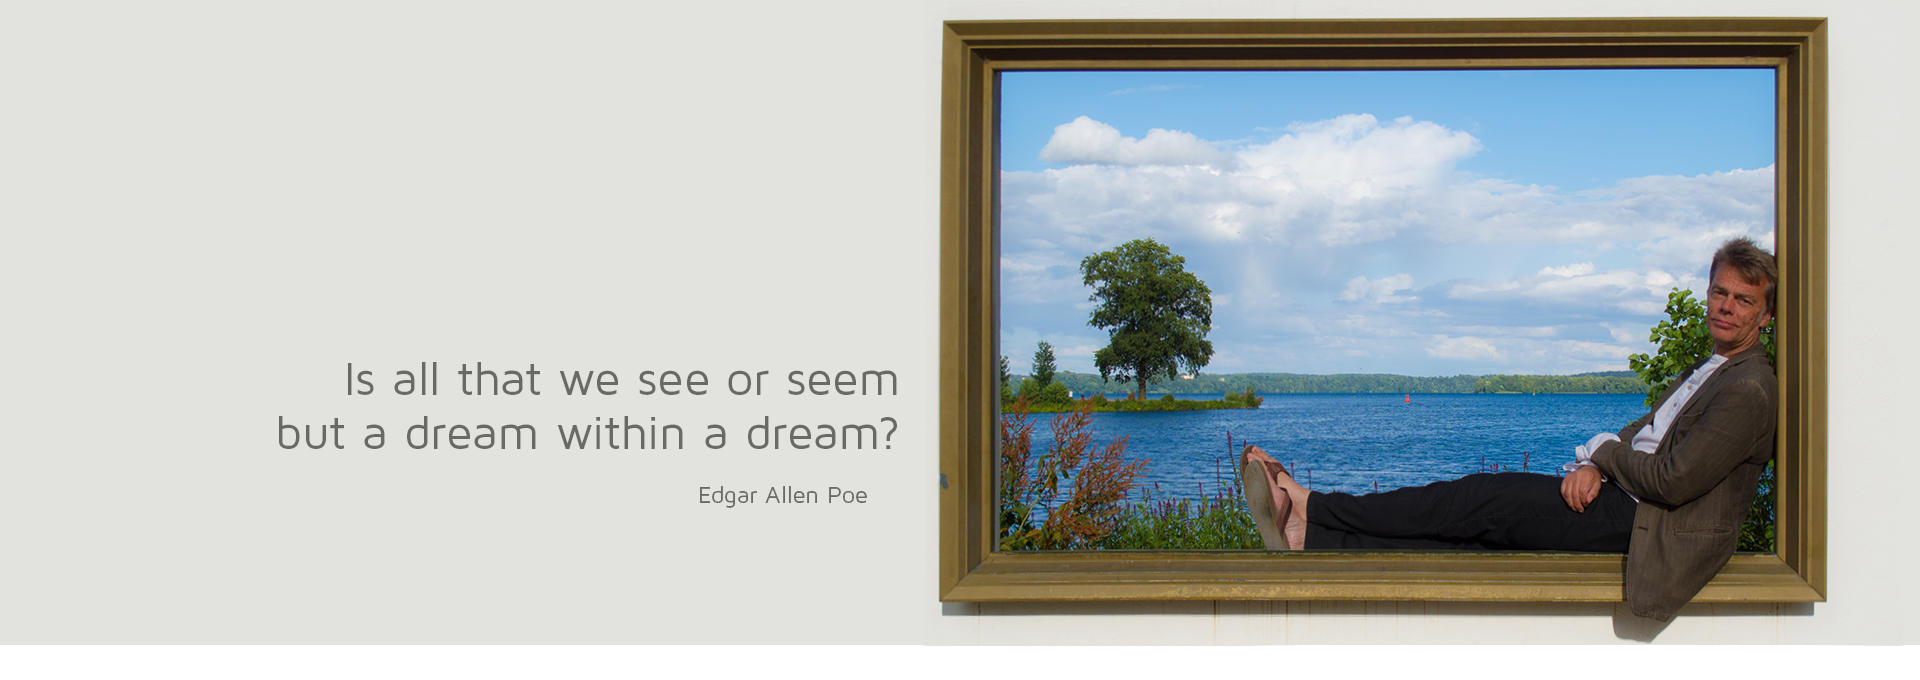 Is all that we see or seem but a dream within a dream? (E. A. Poe)